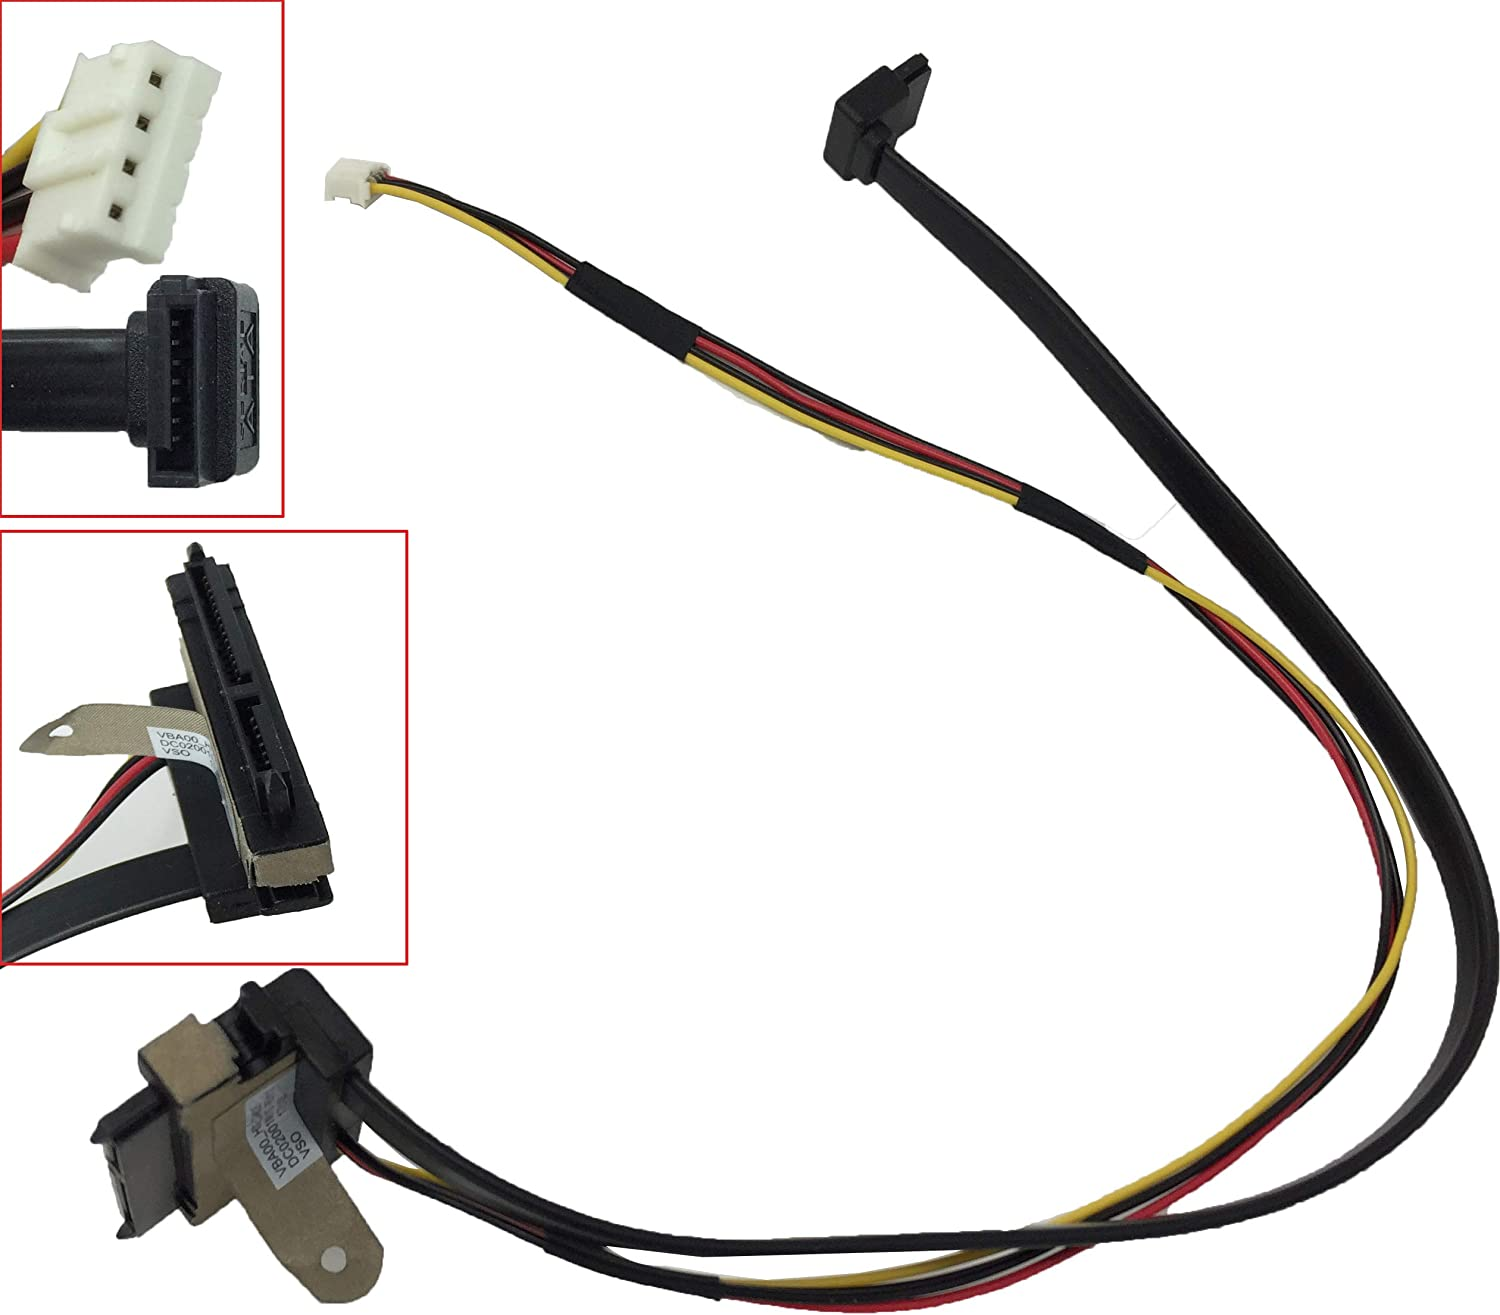 Hard Drive HDD Cable Connector for Lenovo C540 C560 Compatible DC02001MU10 VBA00-HDD-CABLE R 1.0